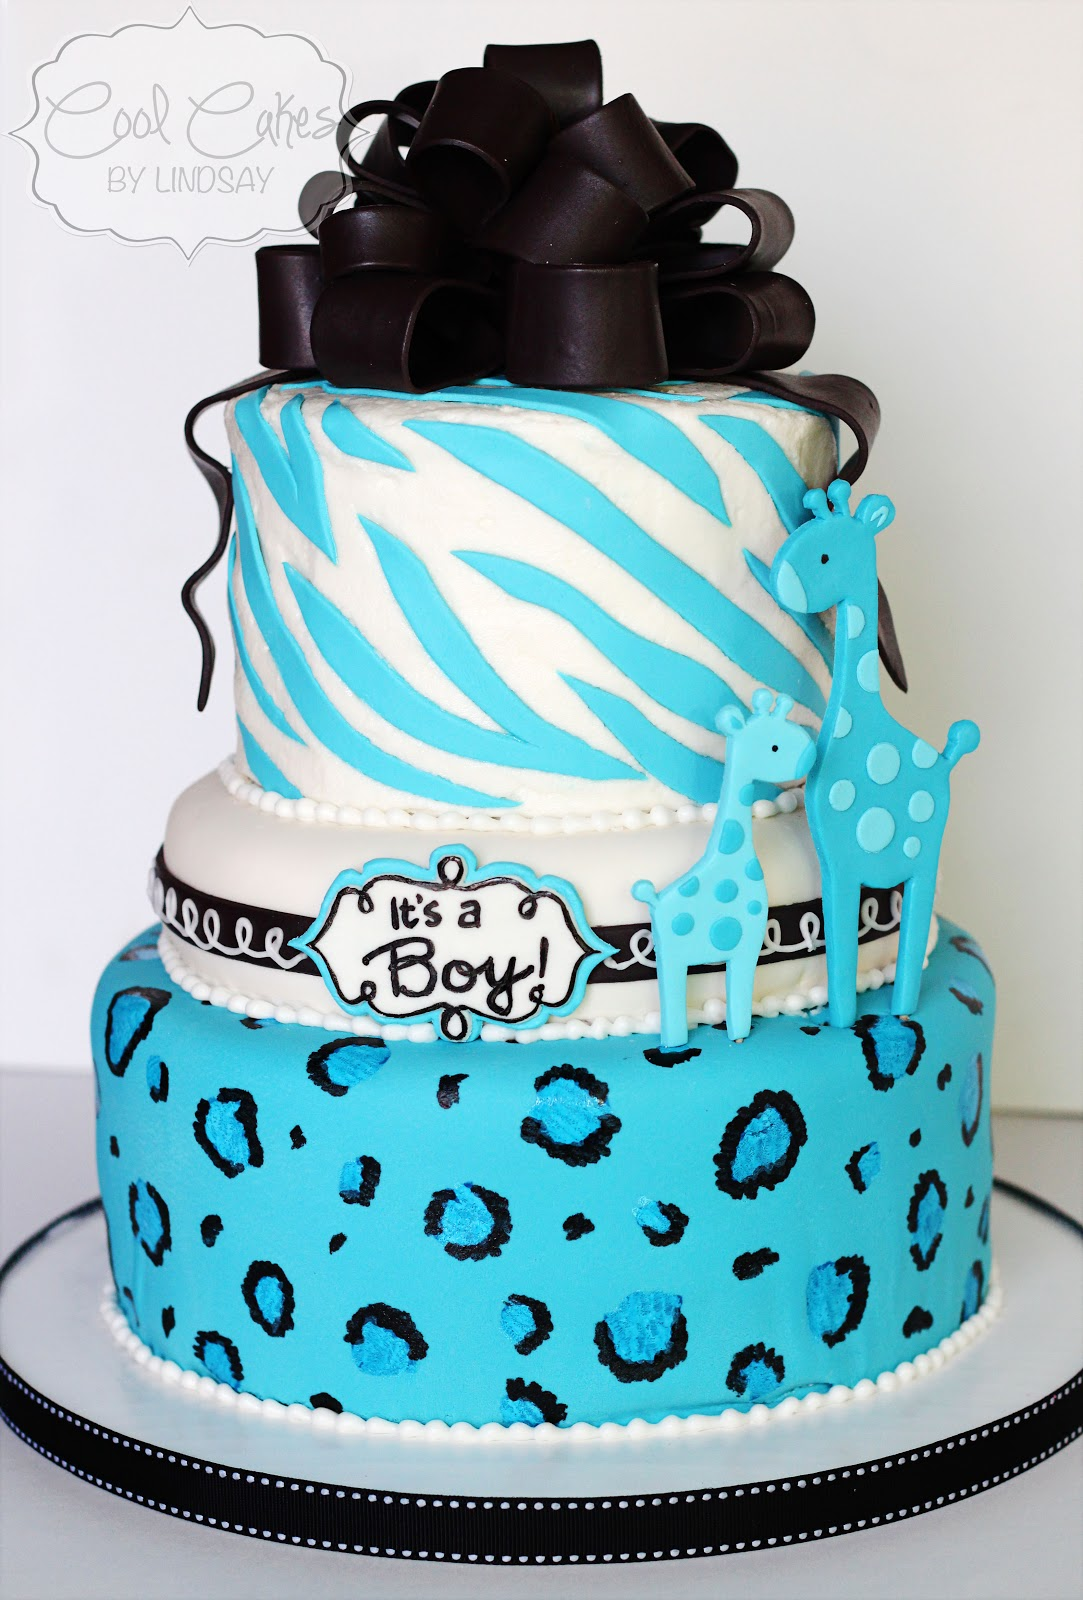 Cool Cakes by Lindsay: Teal and Black Giraffe Baby Shower Cake!